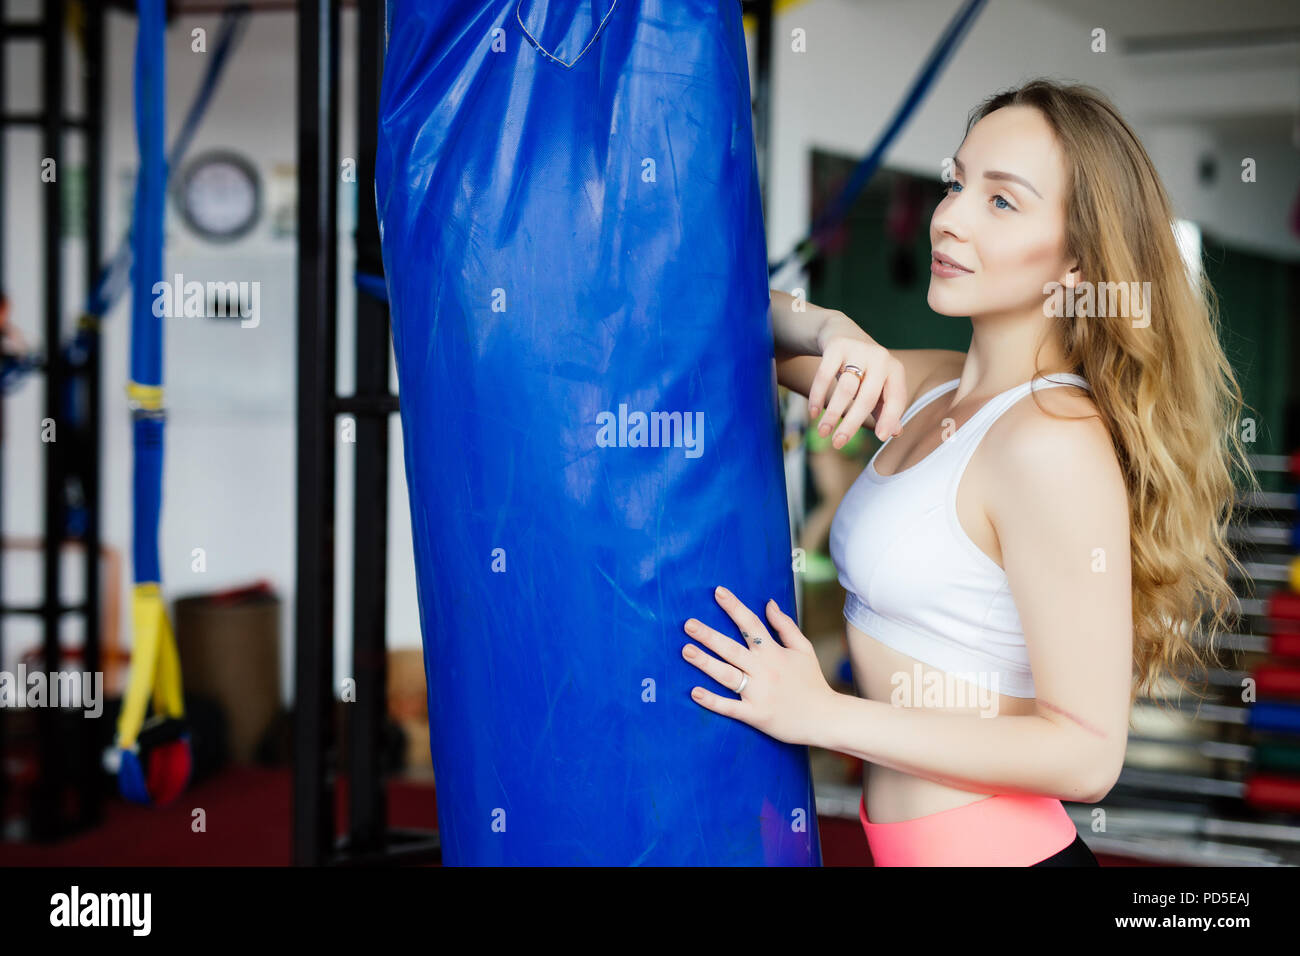 Crossfit fitness woman boxing with punching bag at gym - Stock Image